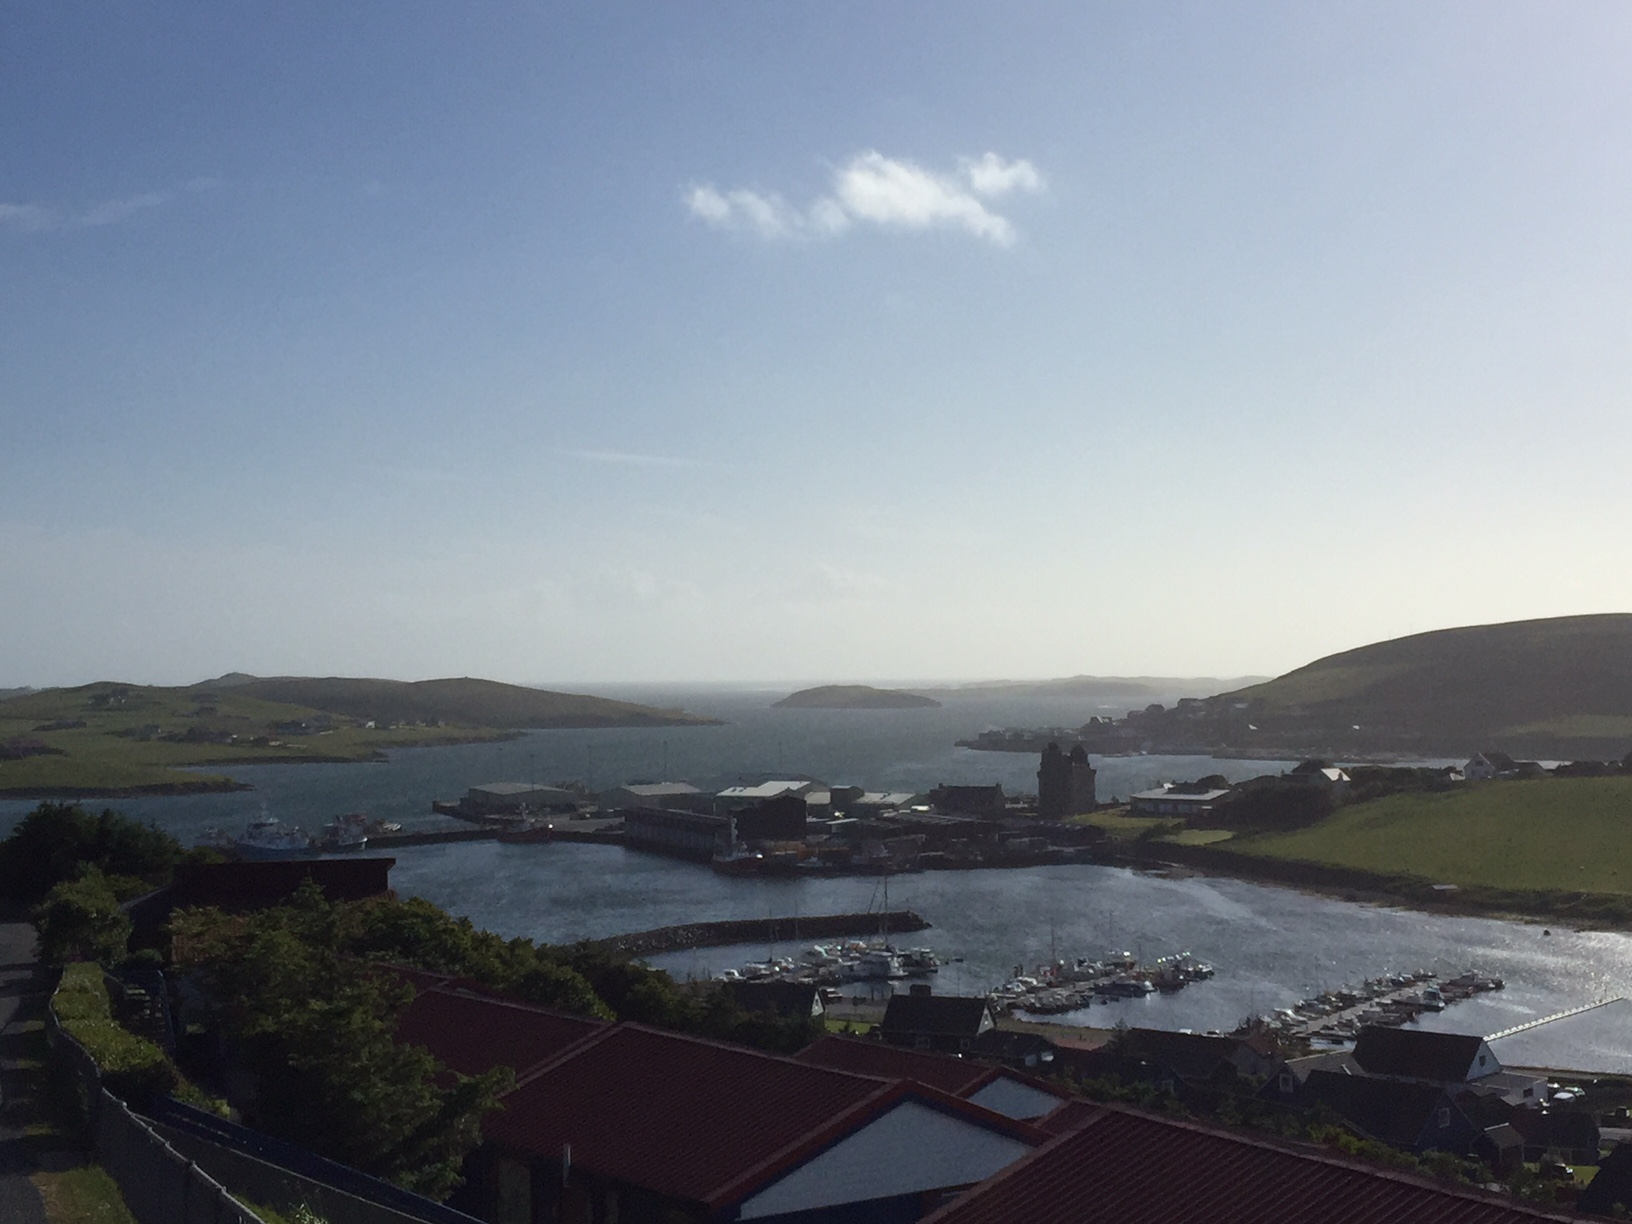 Scalloway seen by day